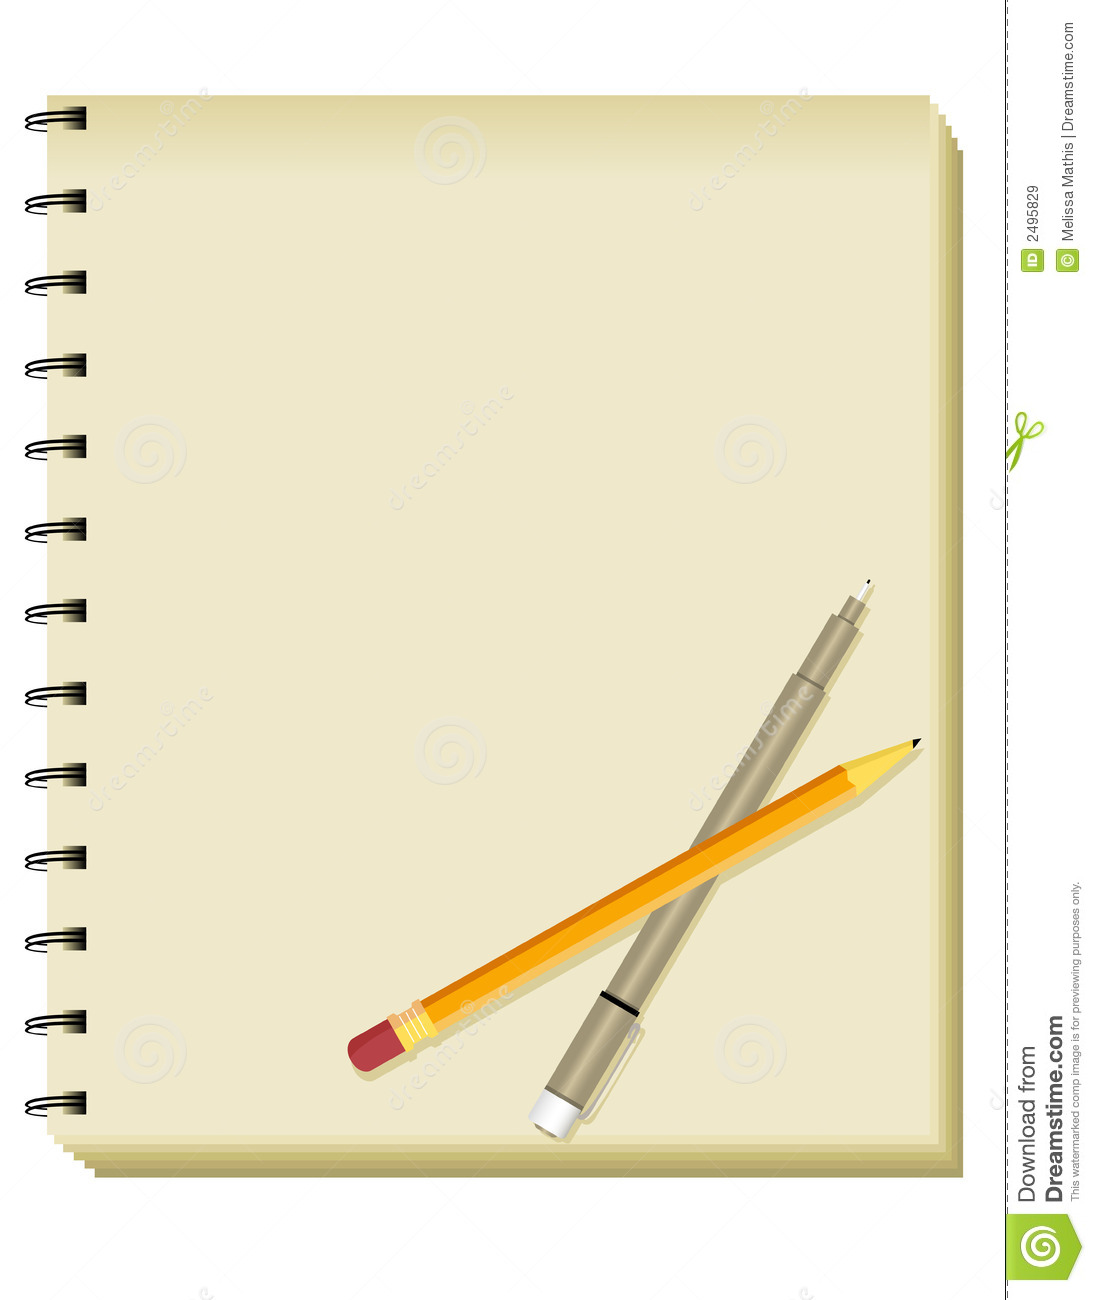 Sketchpad clipart 20 free Cliparts | Download images on